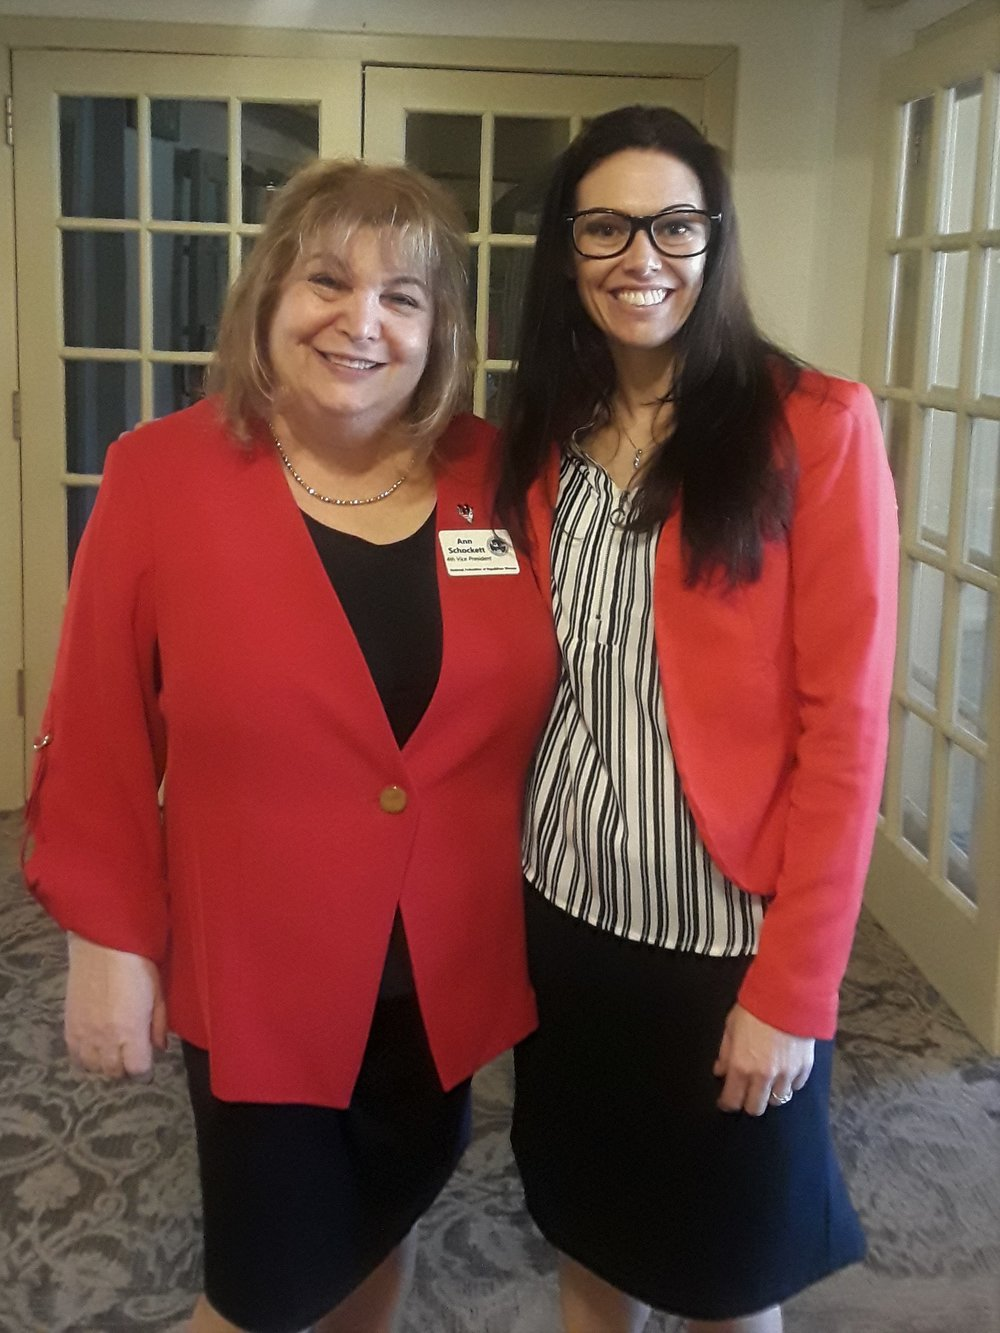 Honored to have met ANN SCHOCKETT from  New York, the  4th Vice President of the National Federation of Republican Women  after her speech at the IFRW Red Jacket luncheon in March.